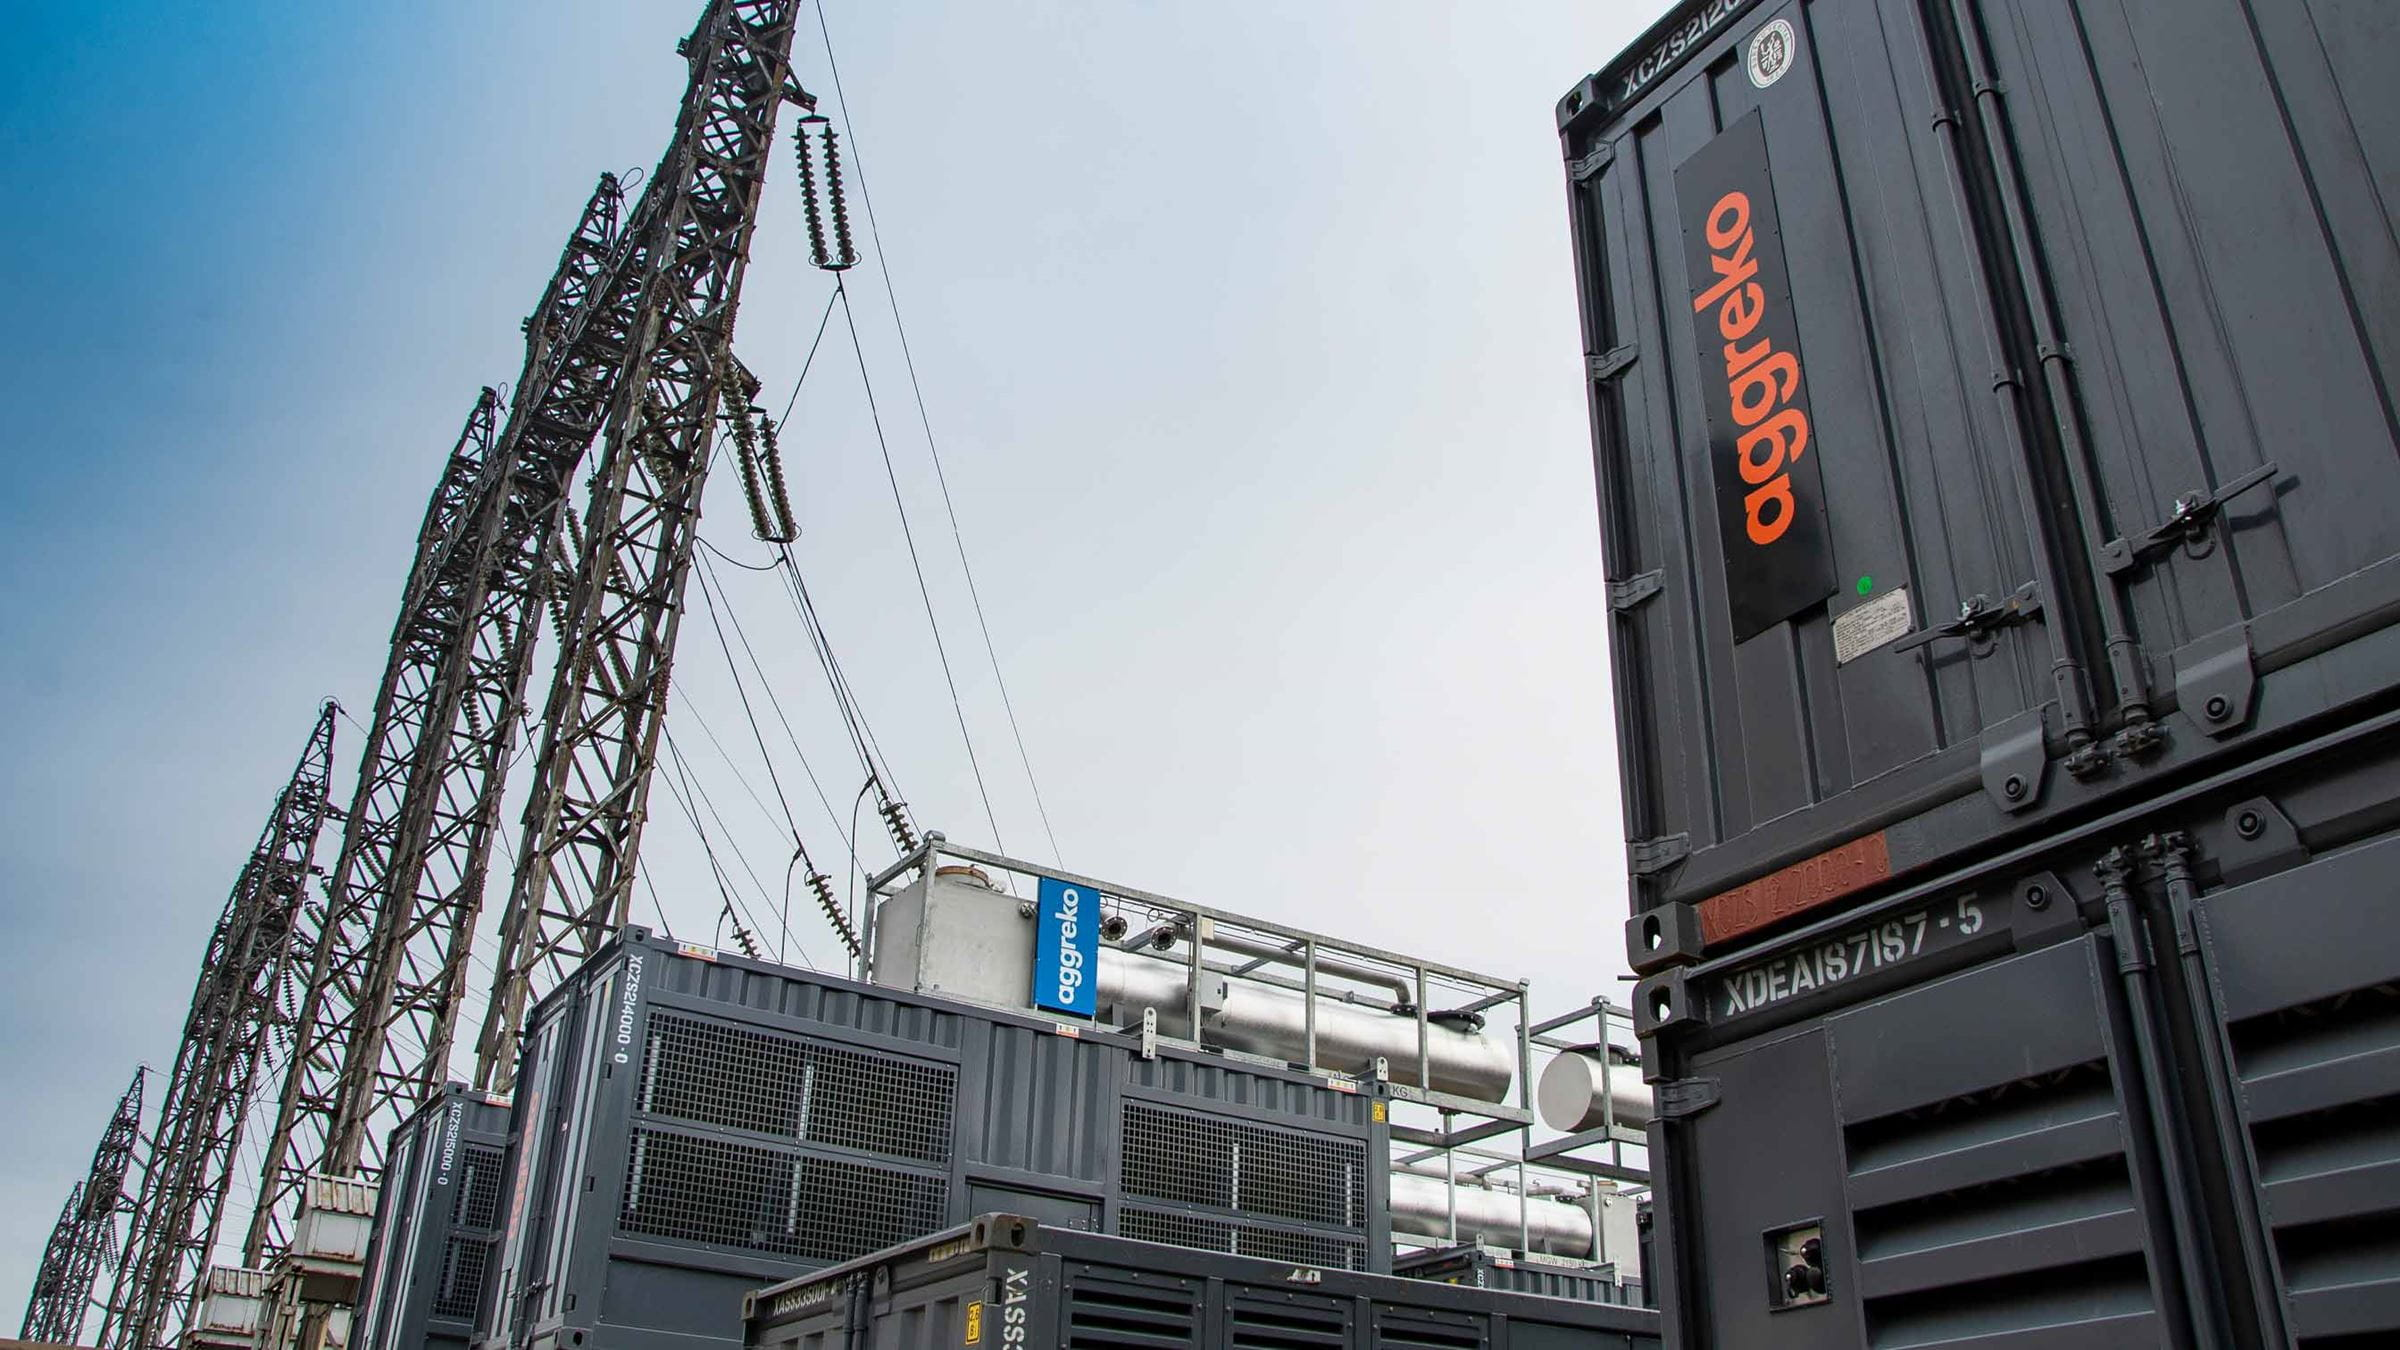 Aggreko equipment and power lines